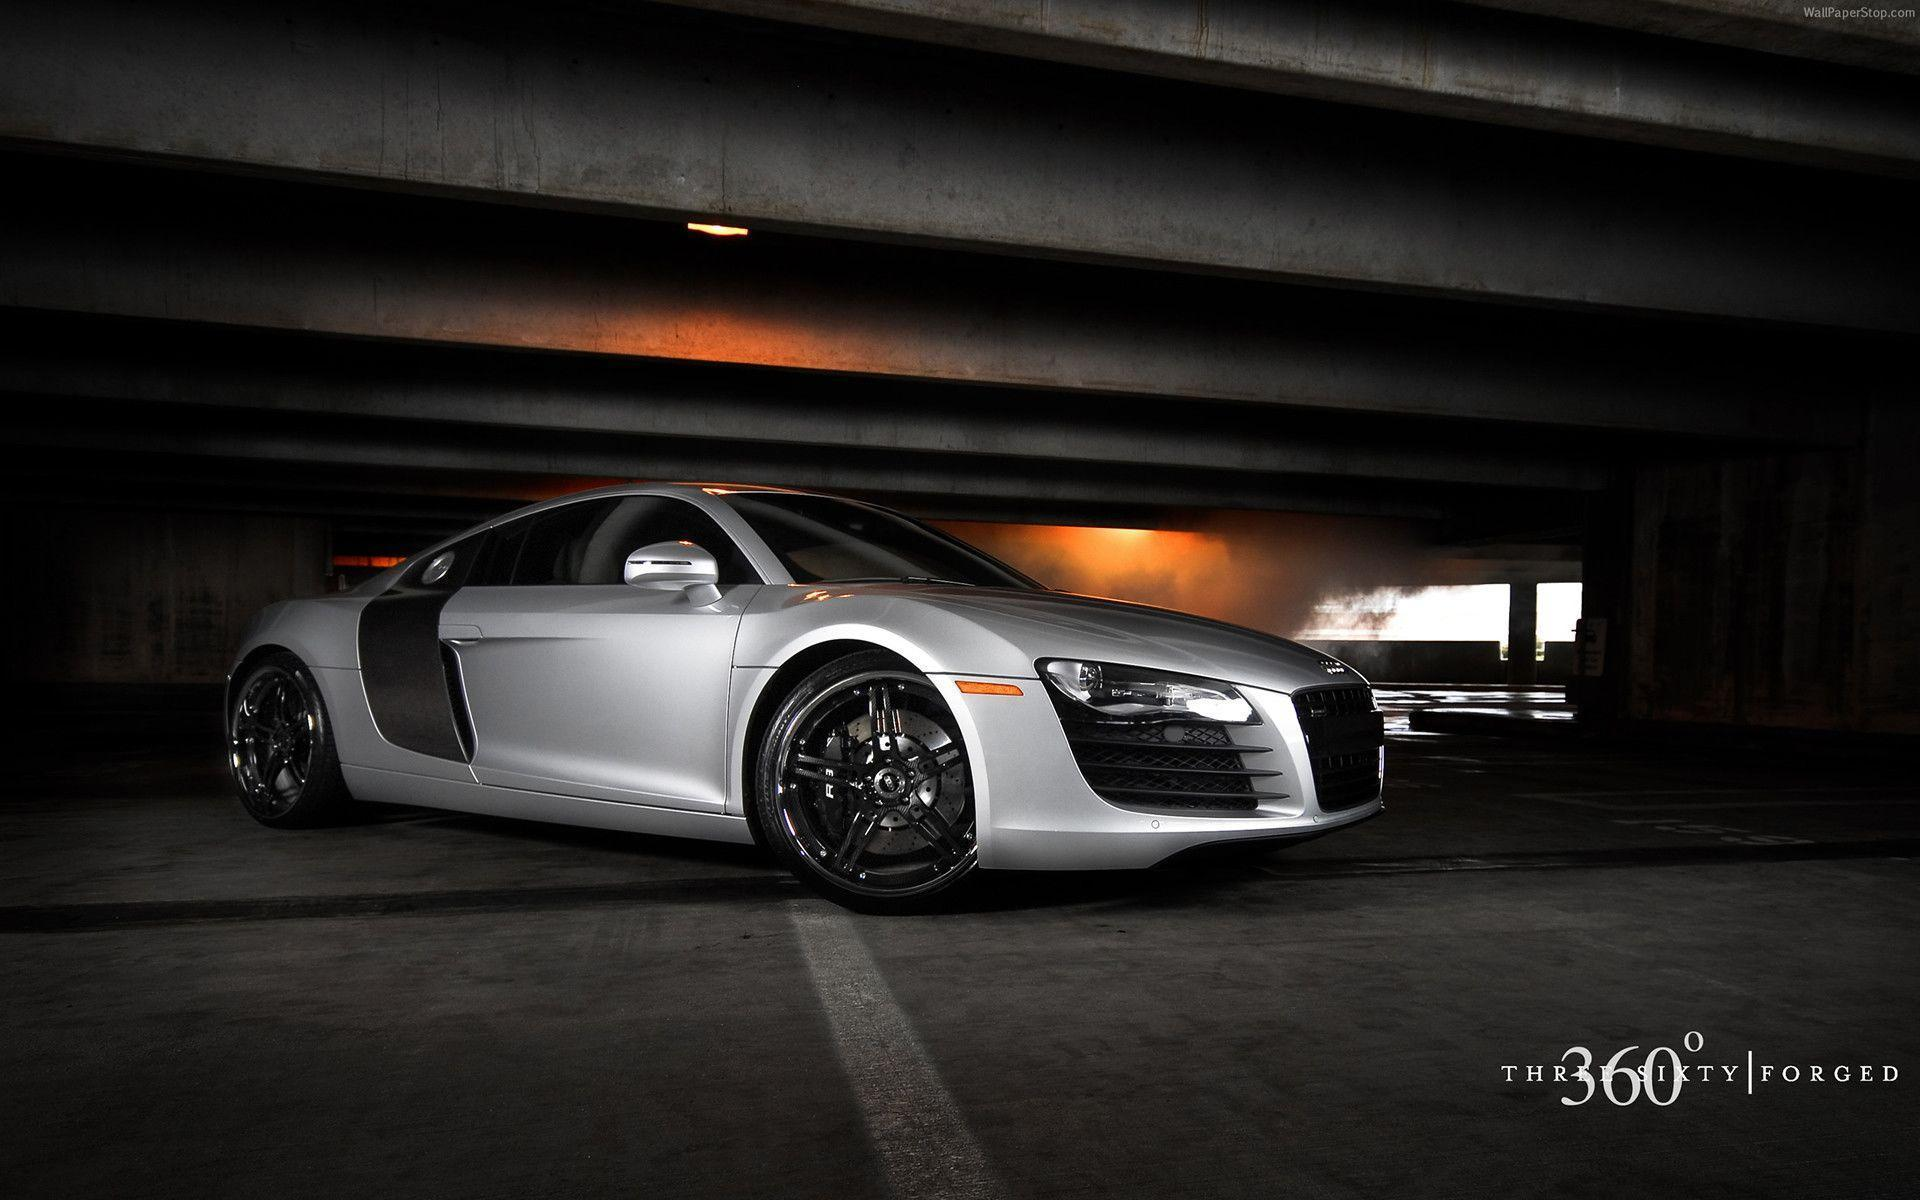 Best Wallpaper Gallery With Pc Wallpaper Volkswagen: Audi R8 Wallpapers